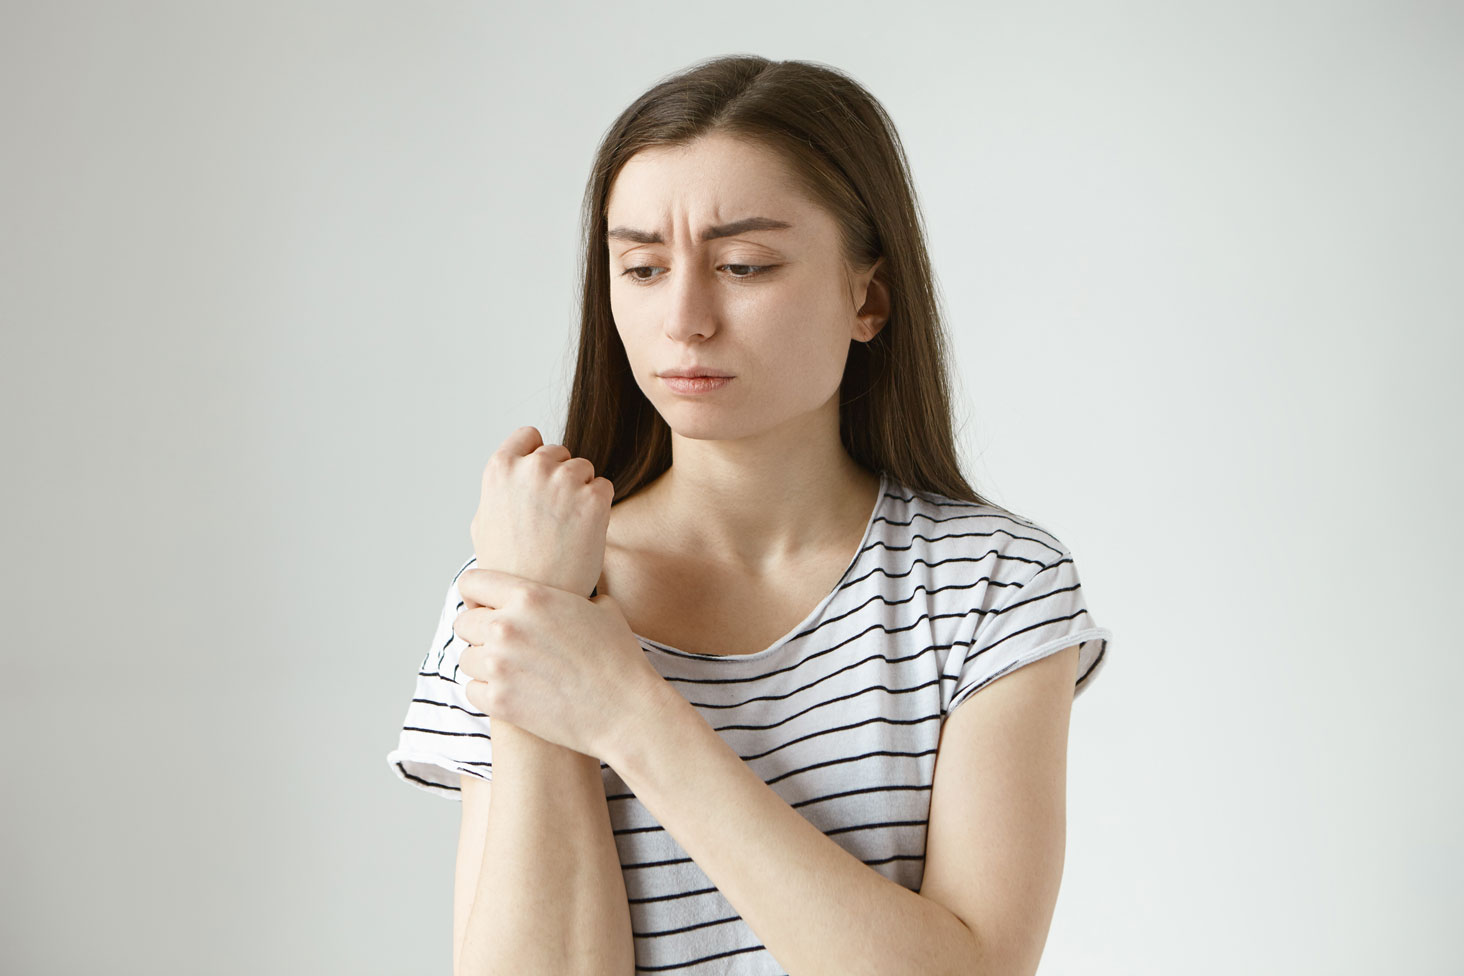 sad frustrated woman joint pain RA